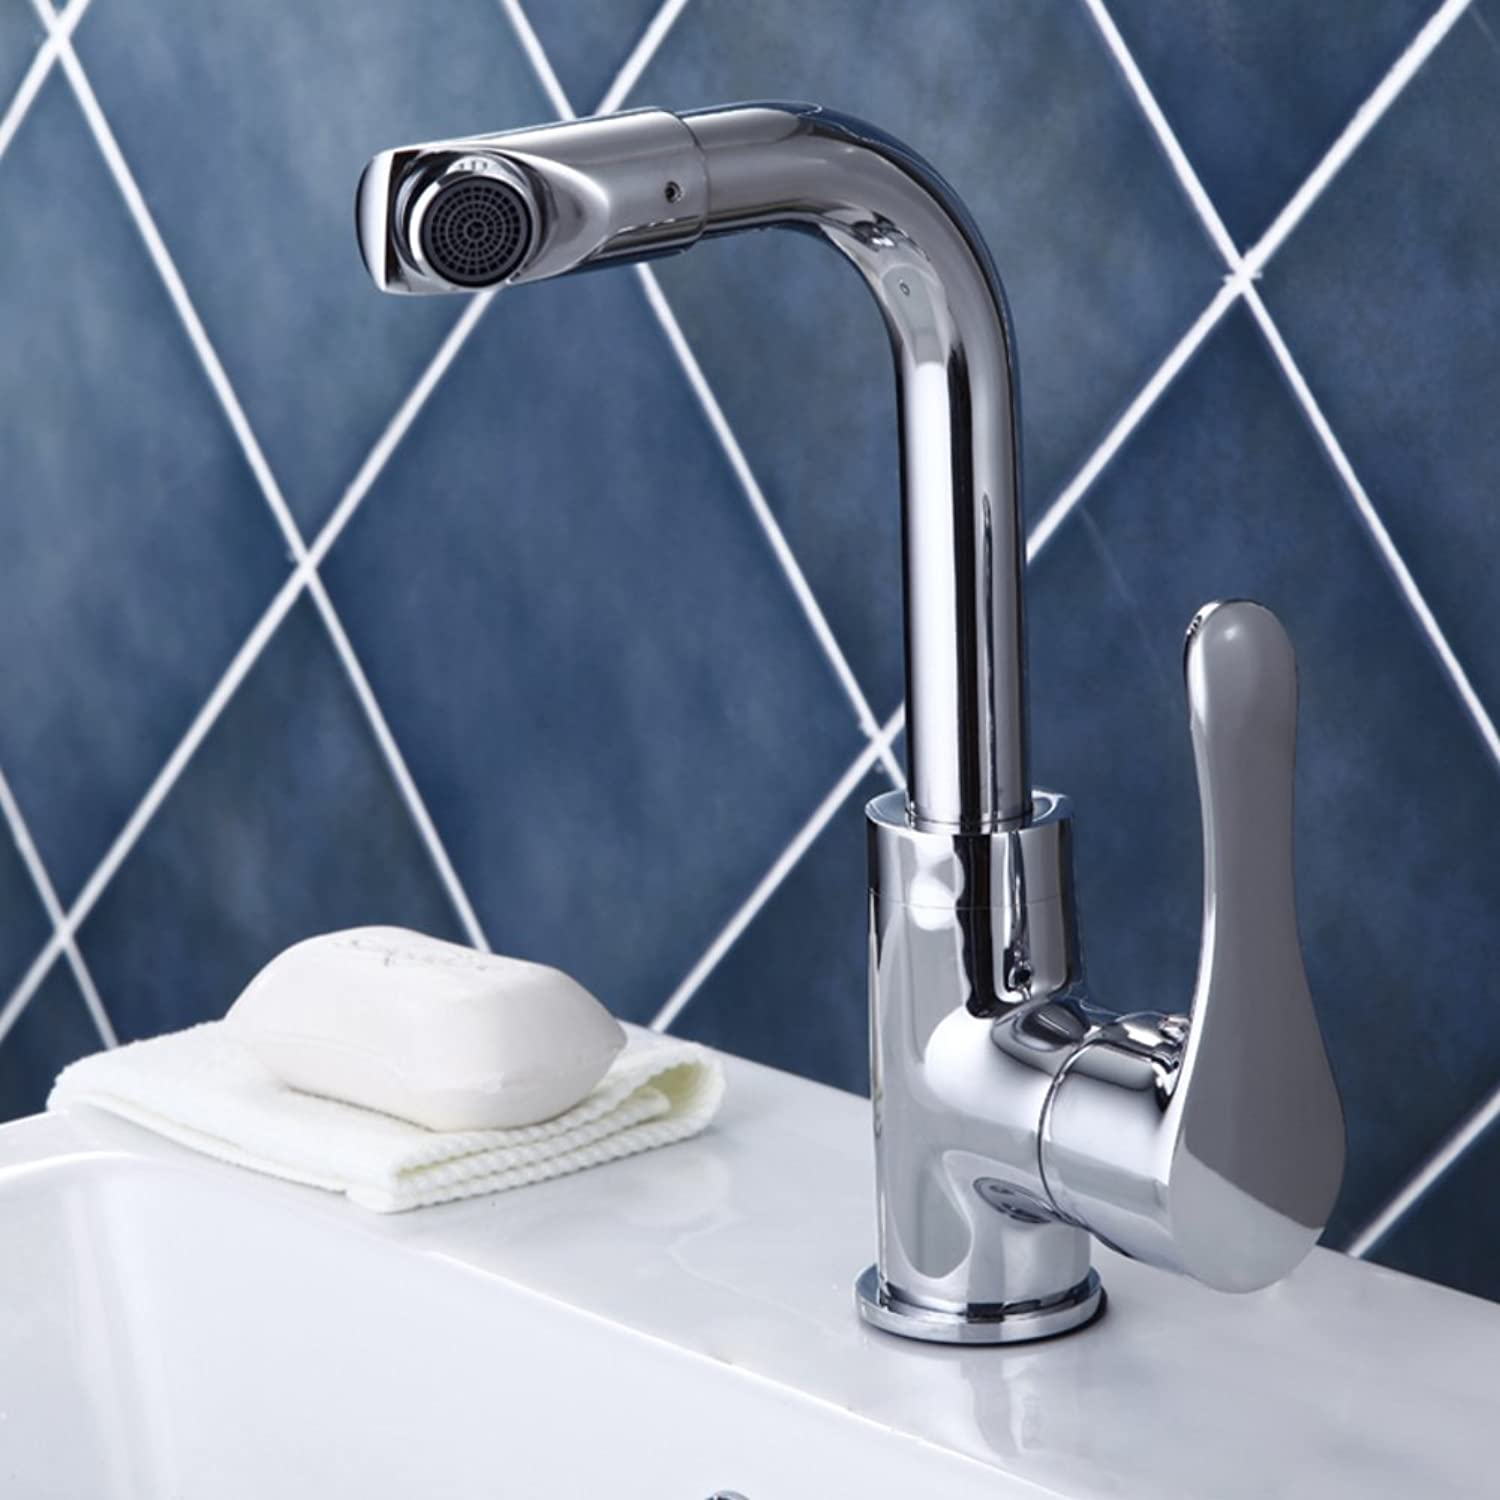 ZHF All-copper hot and cold tap Kitchen Faucet Vegetables basin faucet redary sink faucet